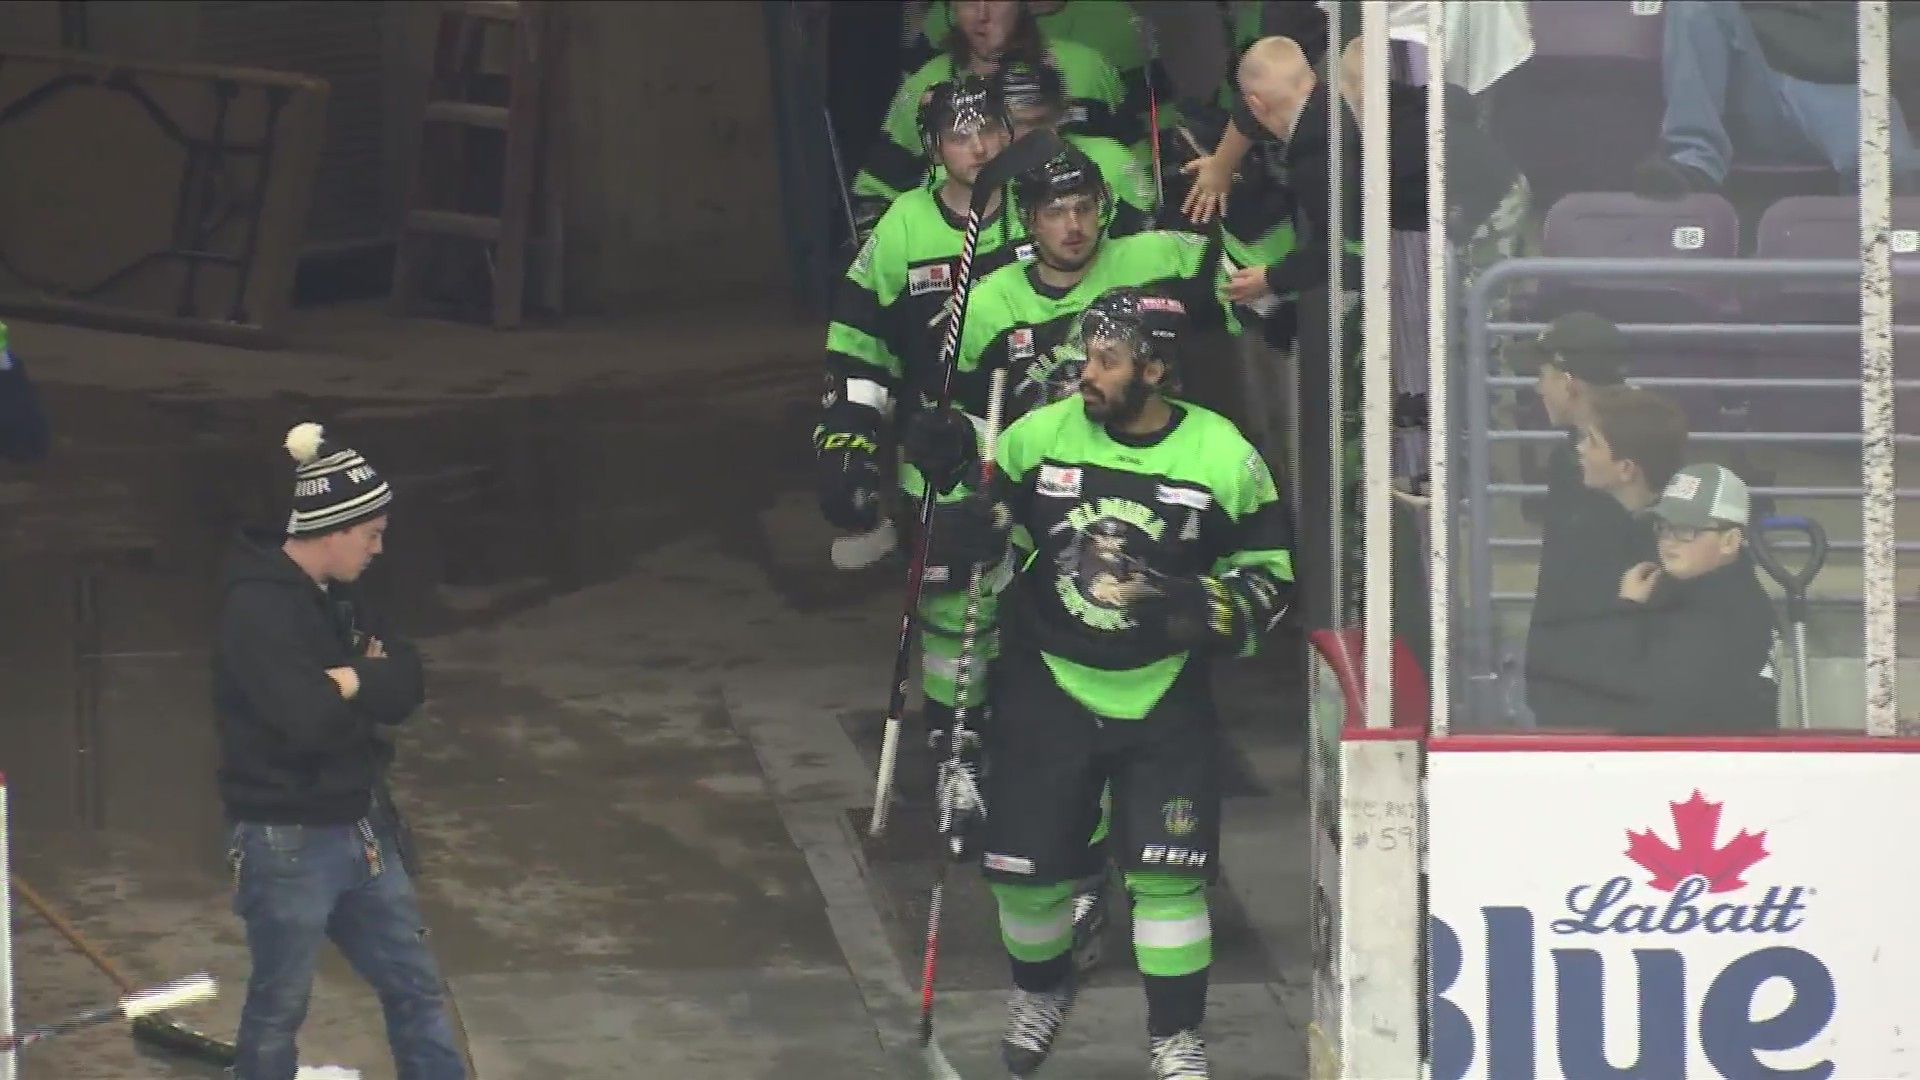 Enforcers sweep Prowlers for 5th straight win